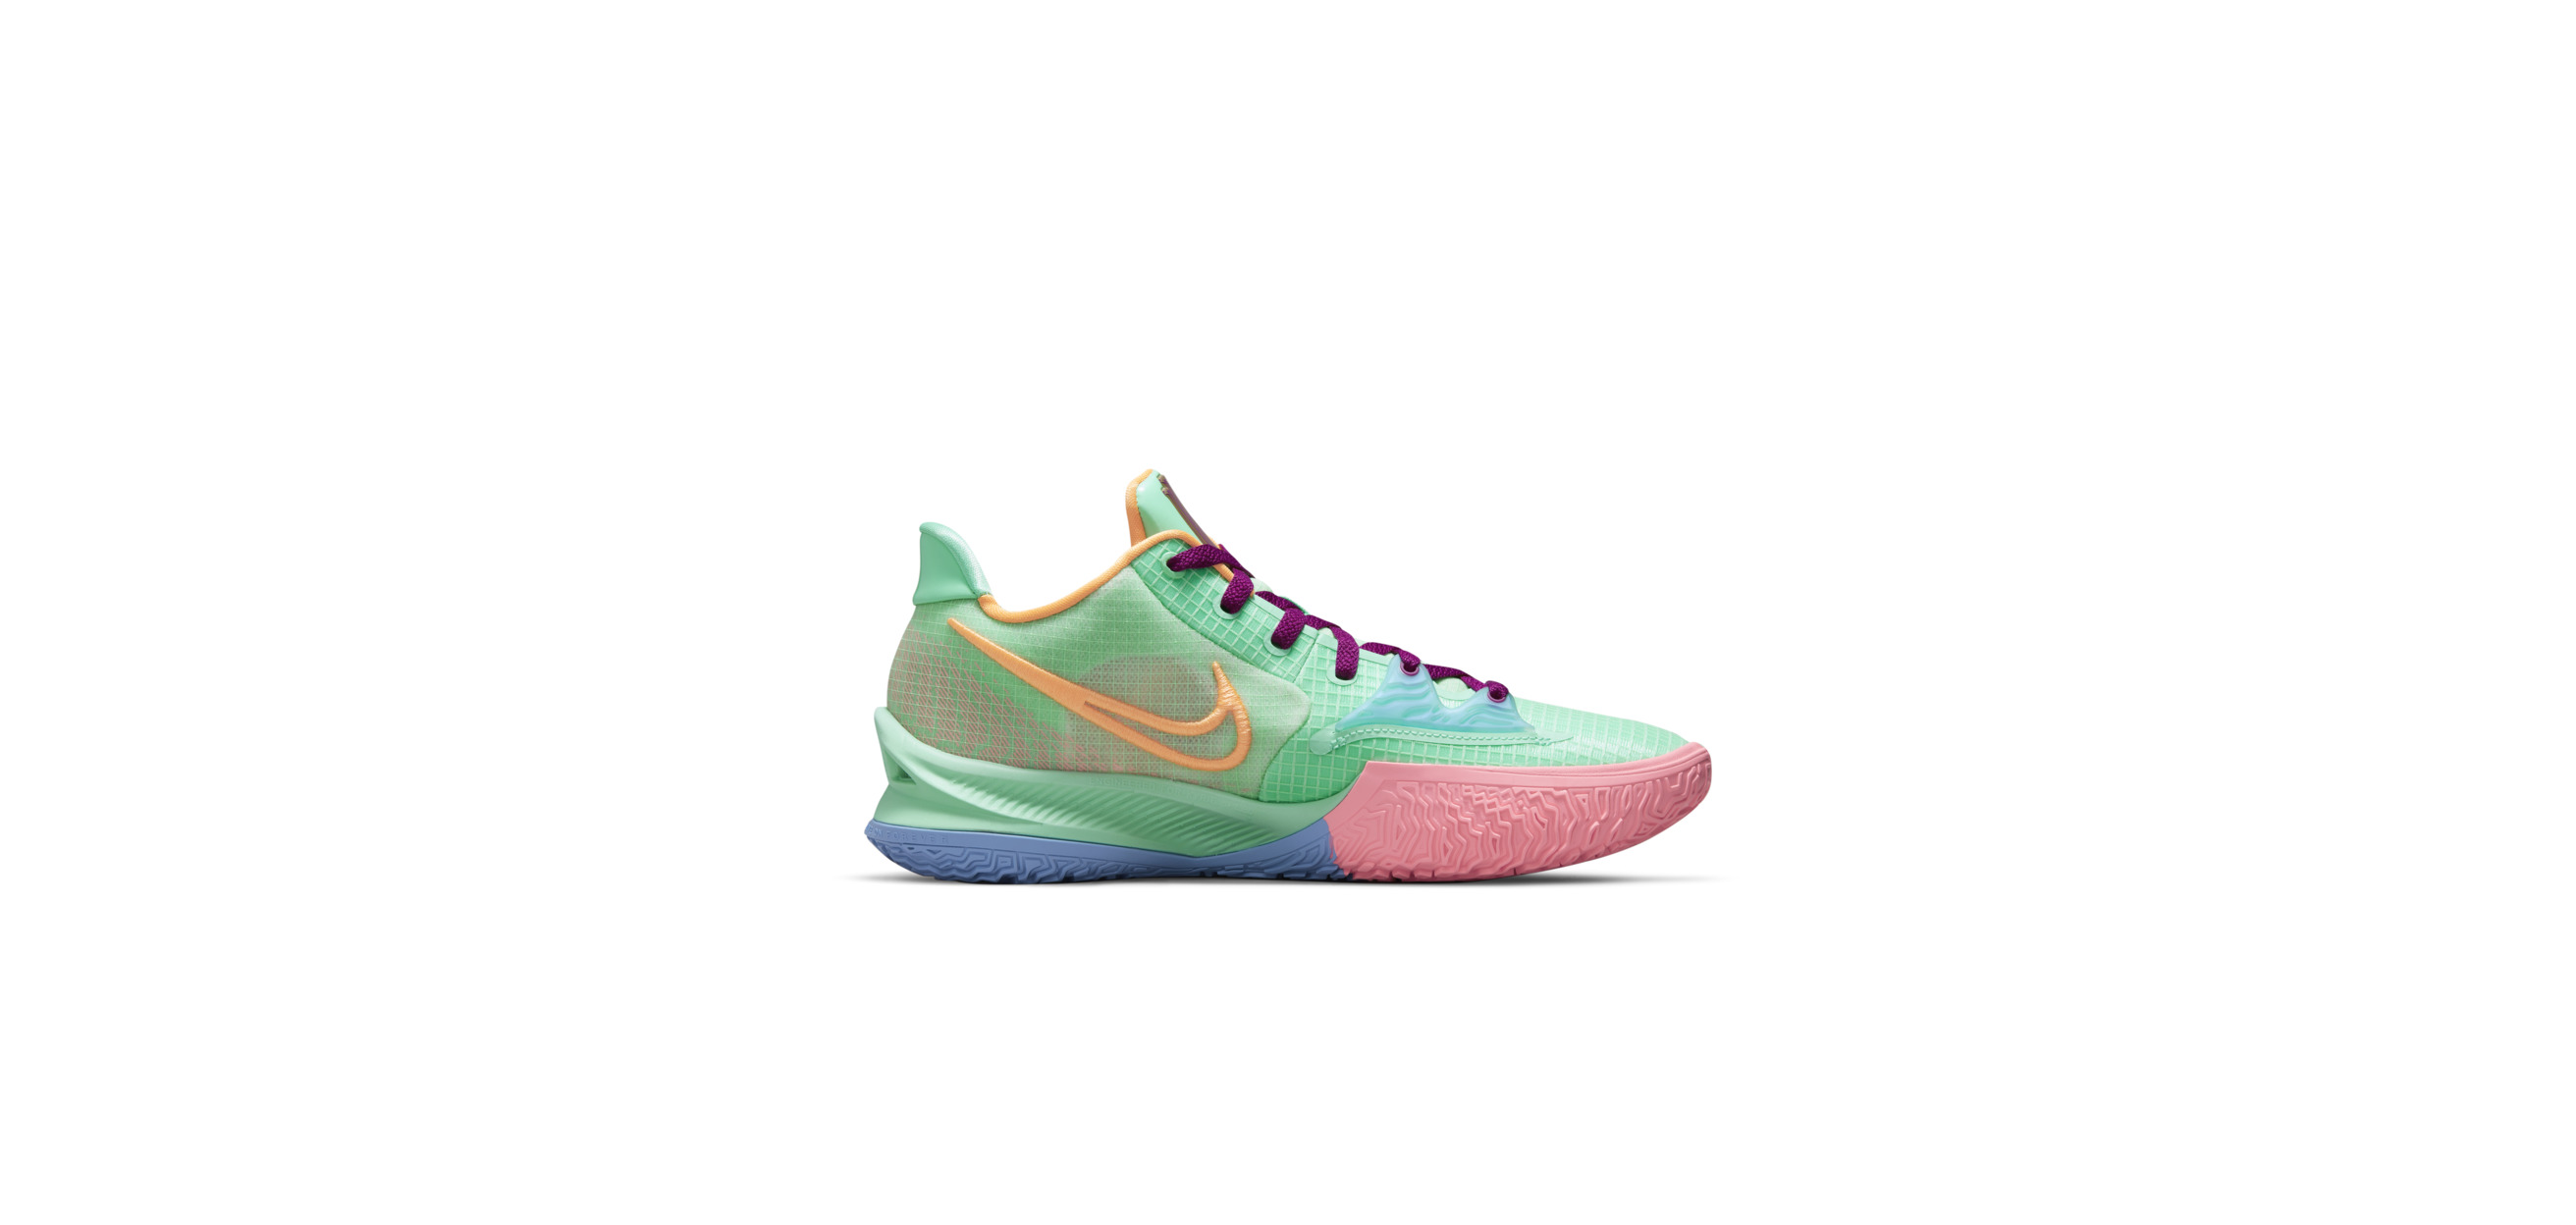 Kyrie Low 4 Green Glow / Red Plum / Metallic Gold / Atomic Orange